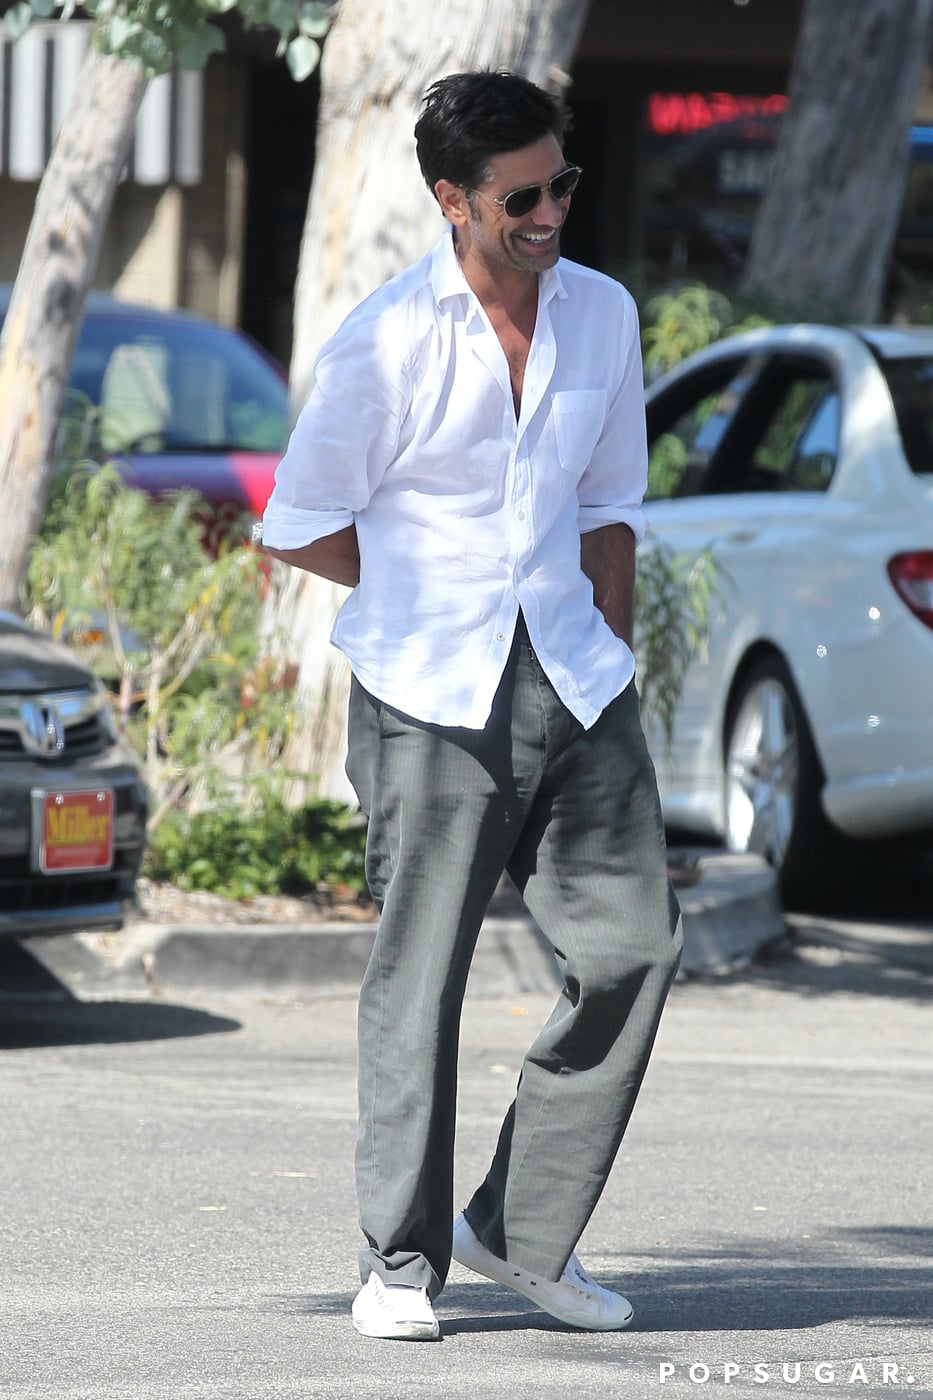 John Stamos left a restaurant in LA after eating lunch with Dave Coulier.